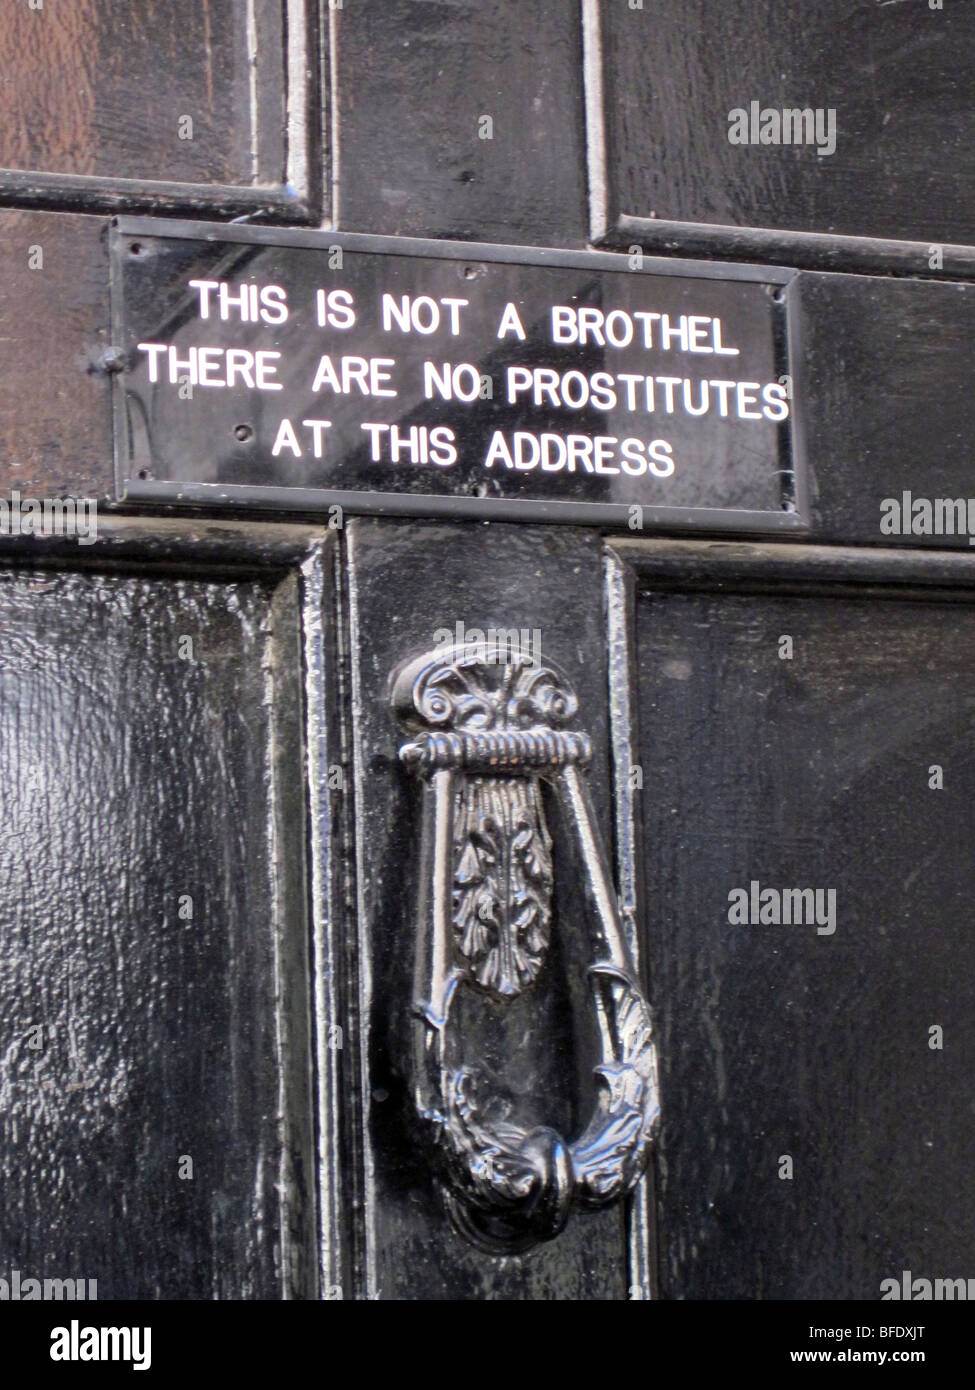 No prostitution, brothel and soliciting signs on doors in Soho, London, England